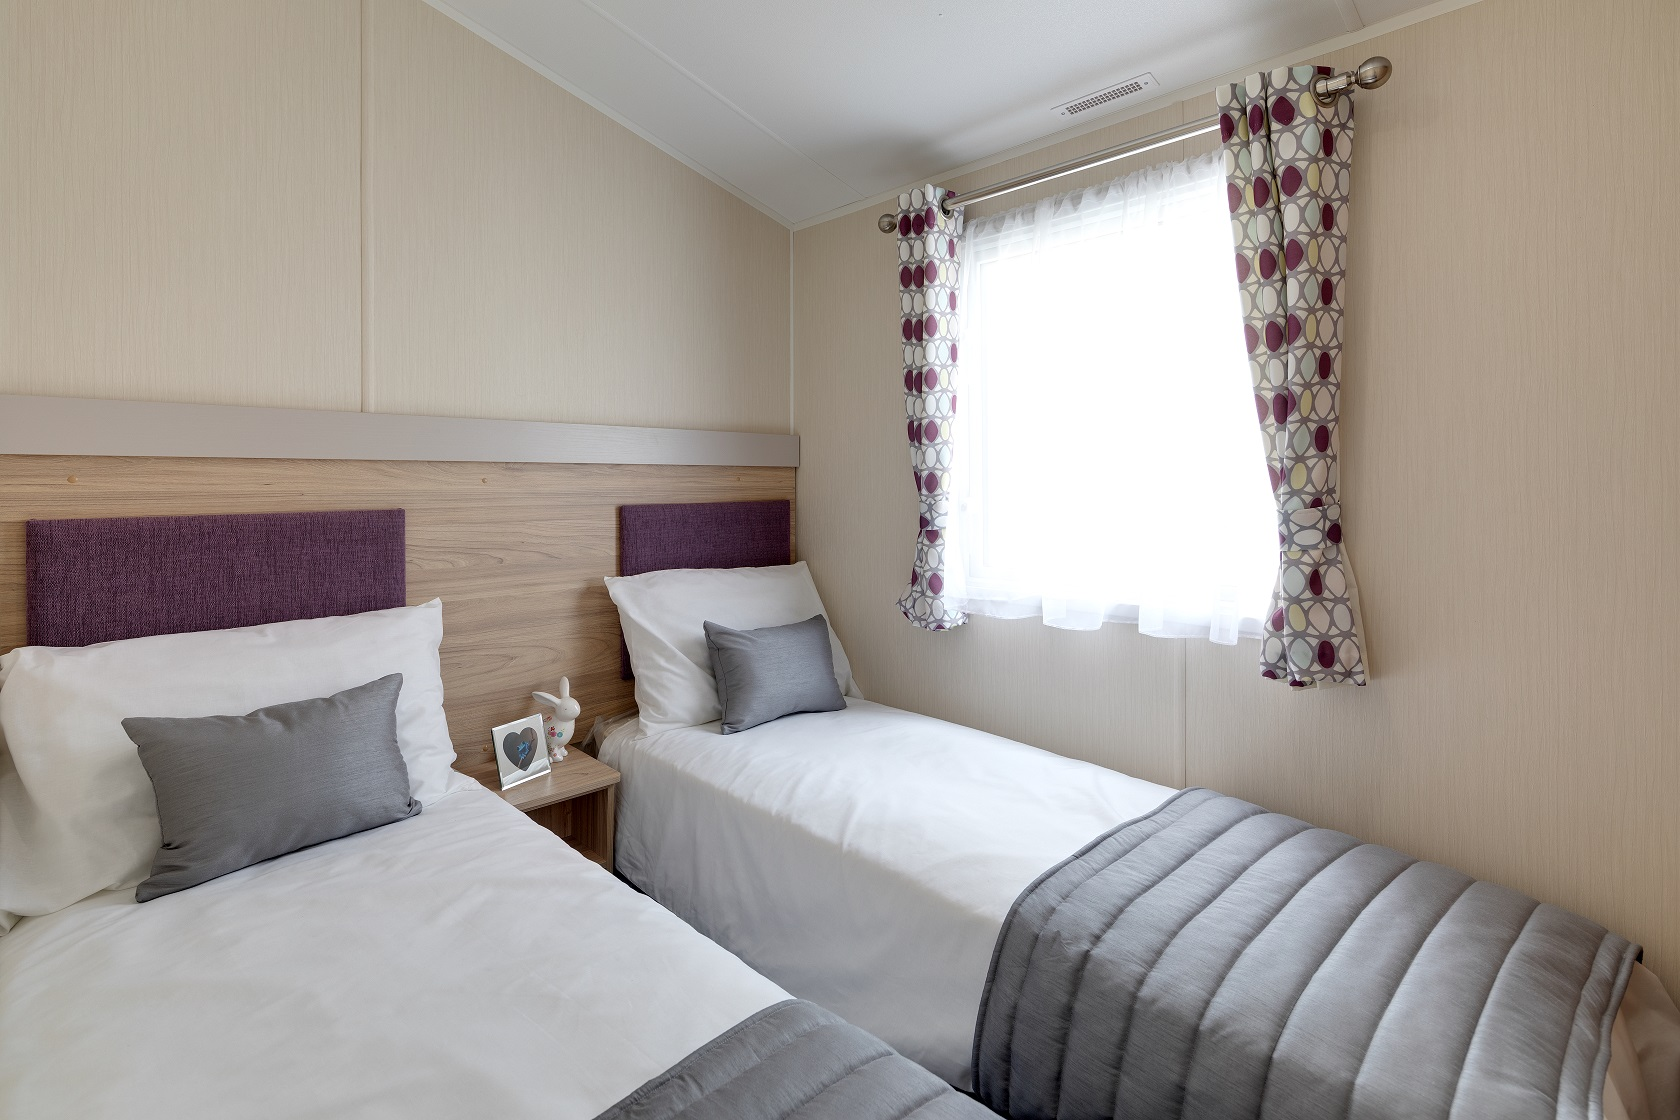 Willerby Linwood: New Static Caravans and Holiday Homes for Sale, Available to Order Image 4